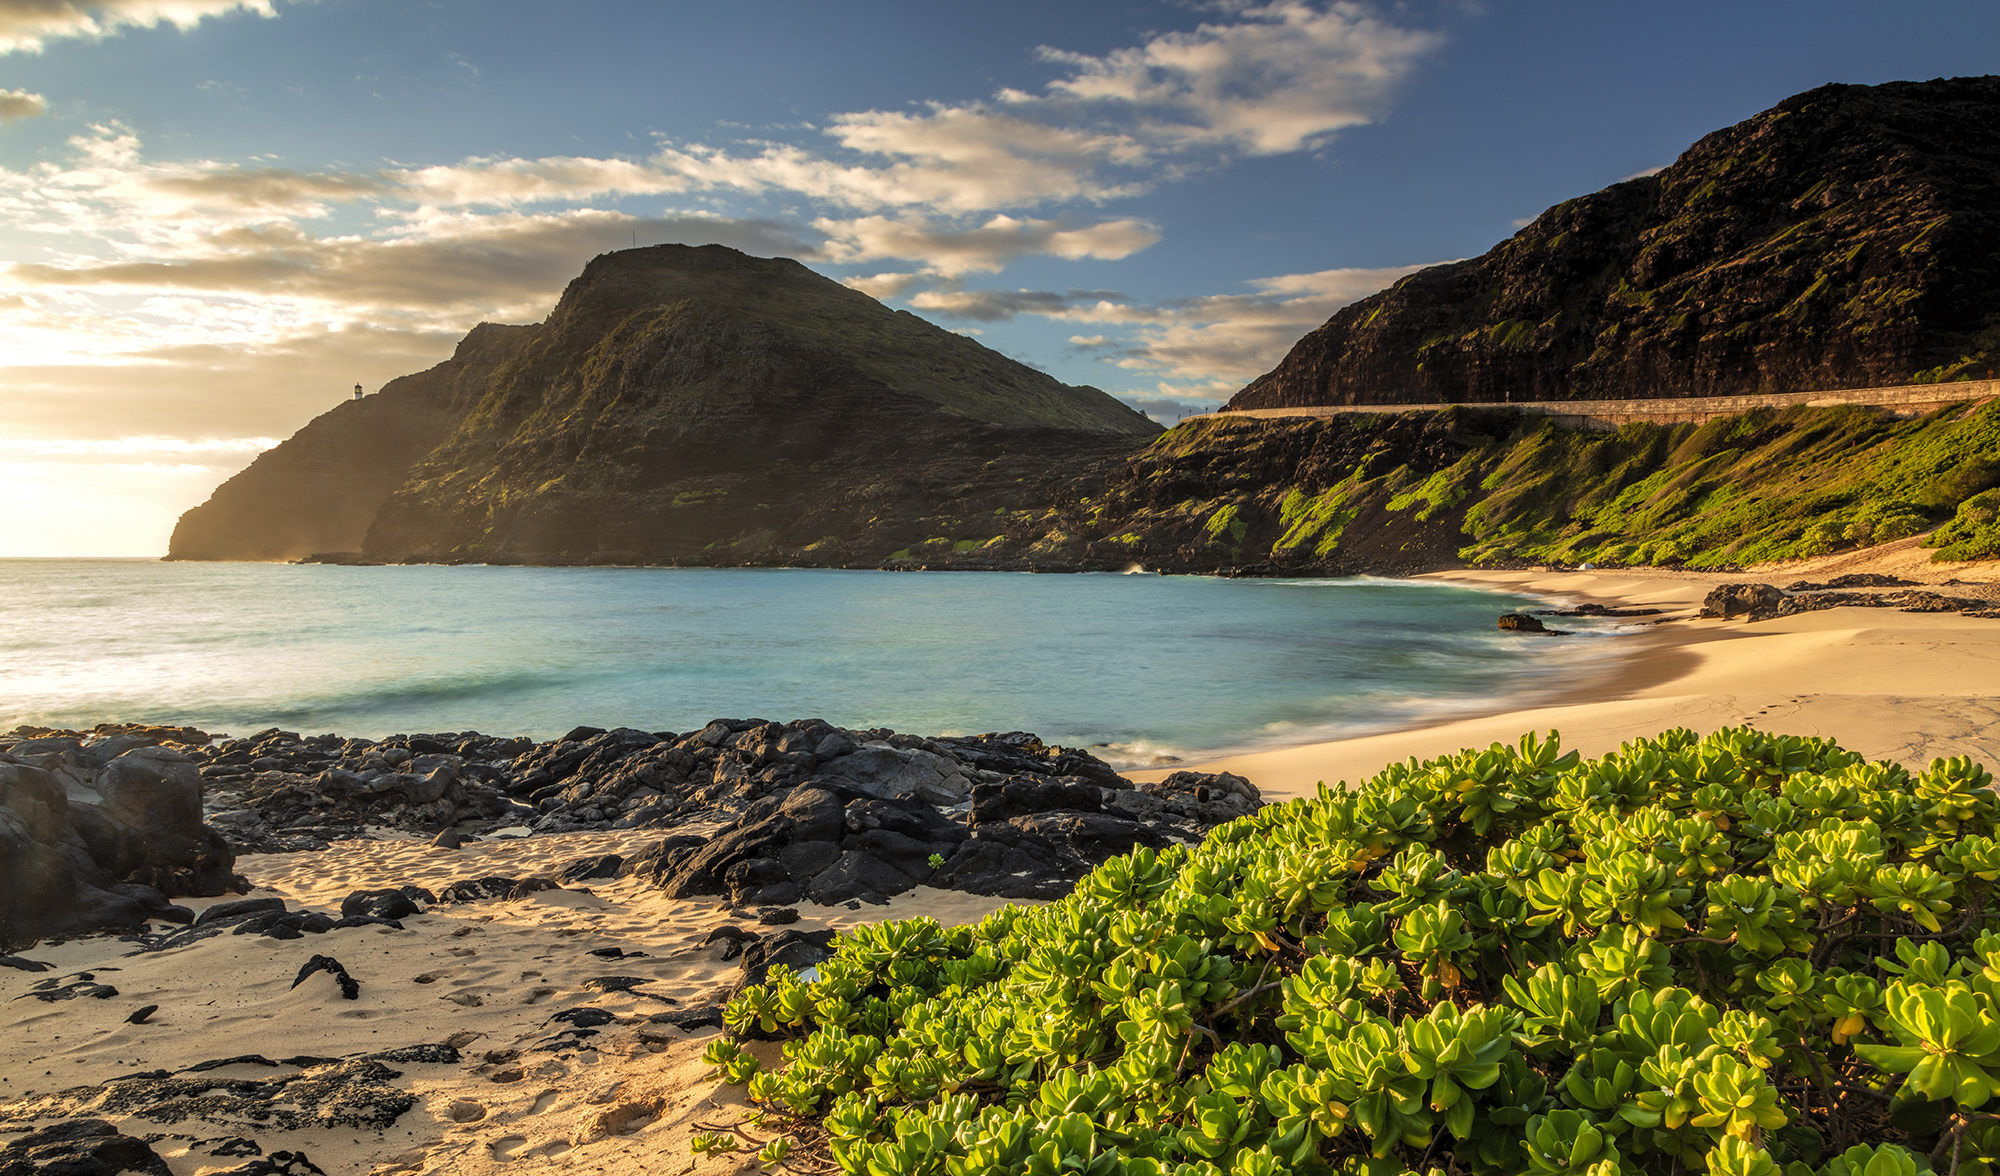 Makapu'u Beach, Hawaii